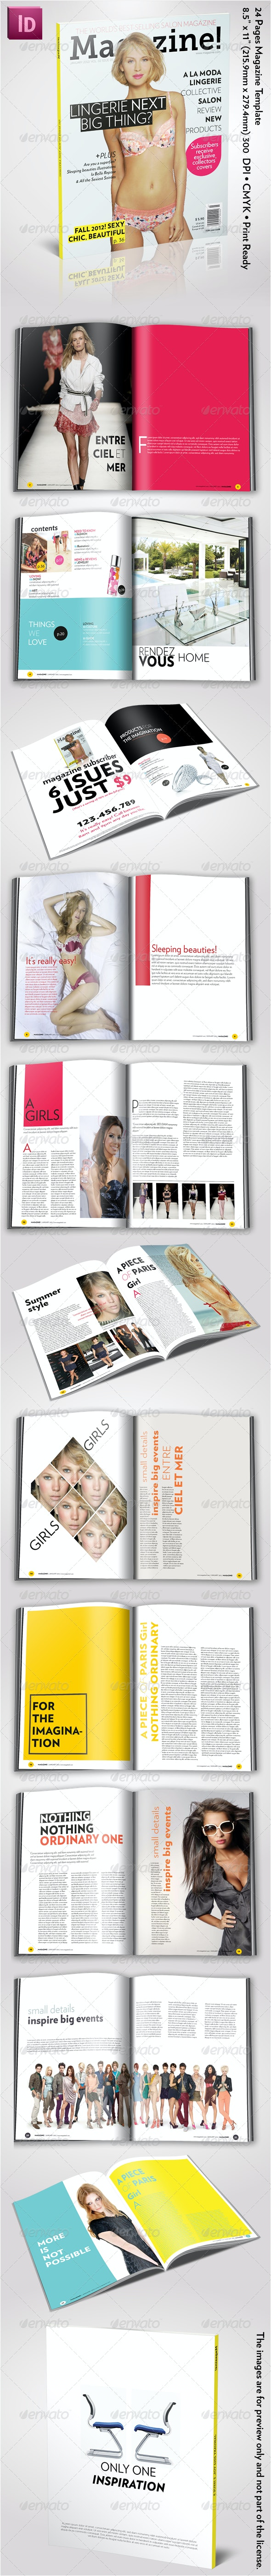 Magazine! 24 Pages InDesign Template - Magazines Print Templates